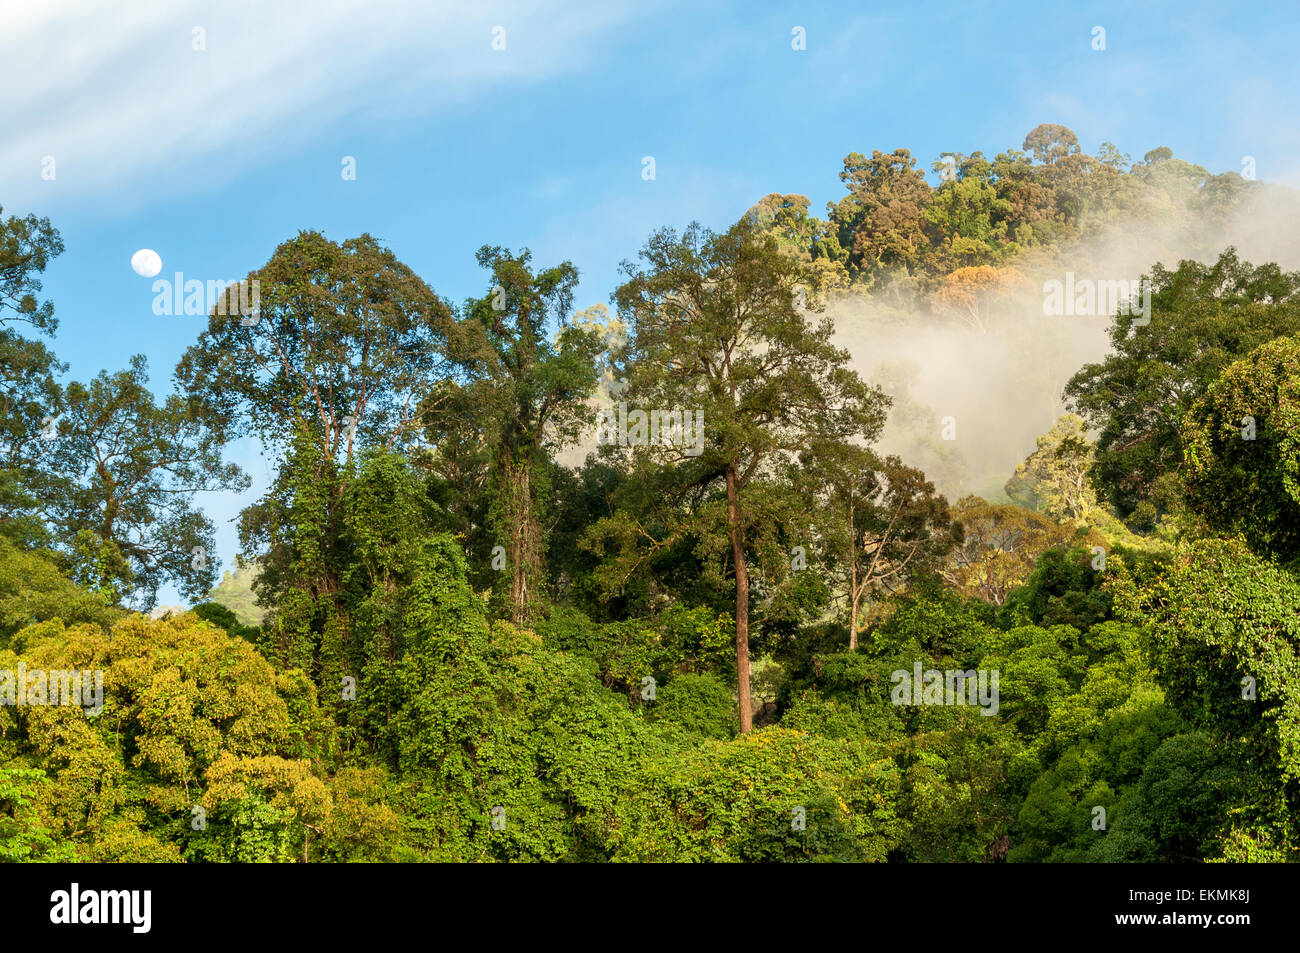 view-of-the-borneo-rainforest-trees-malaysia-EKMK8J.jpg